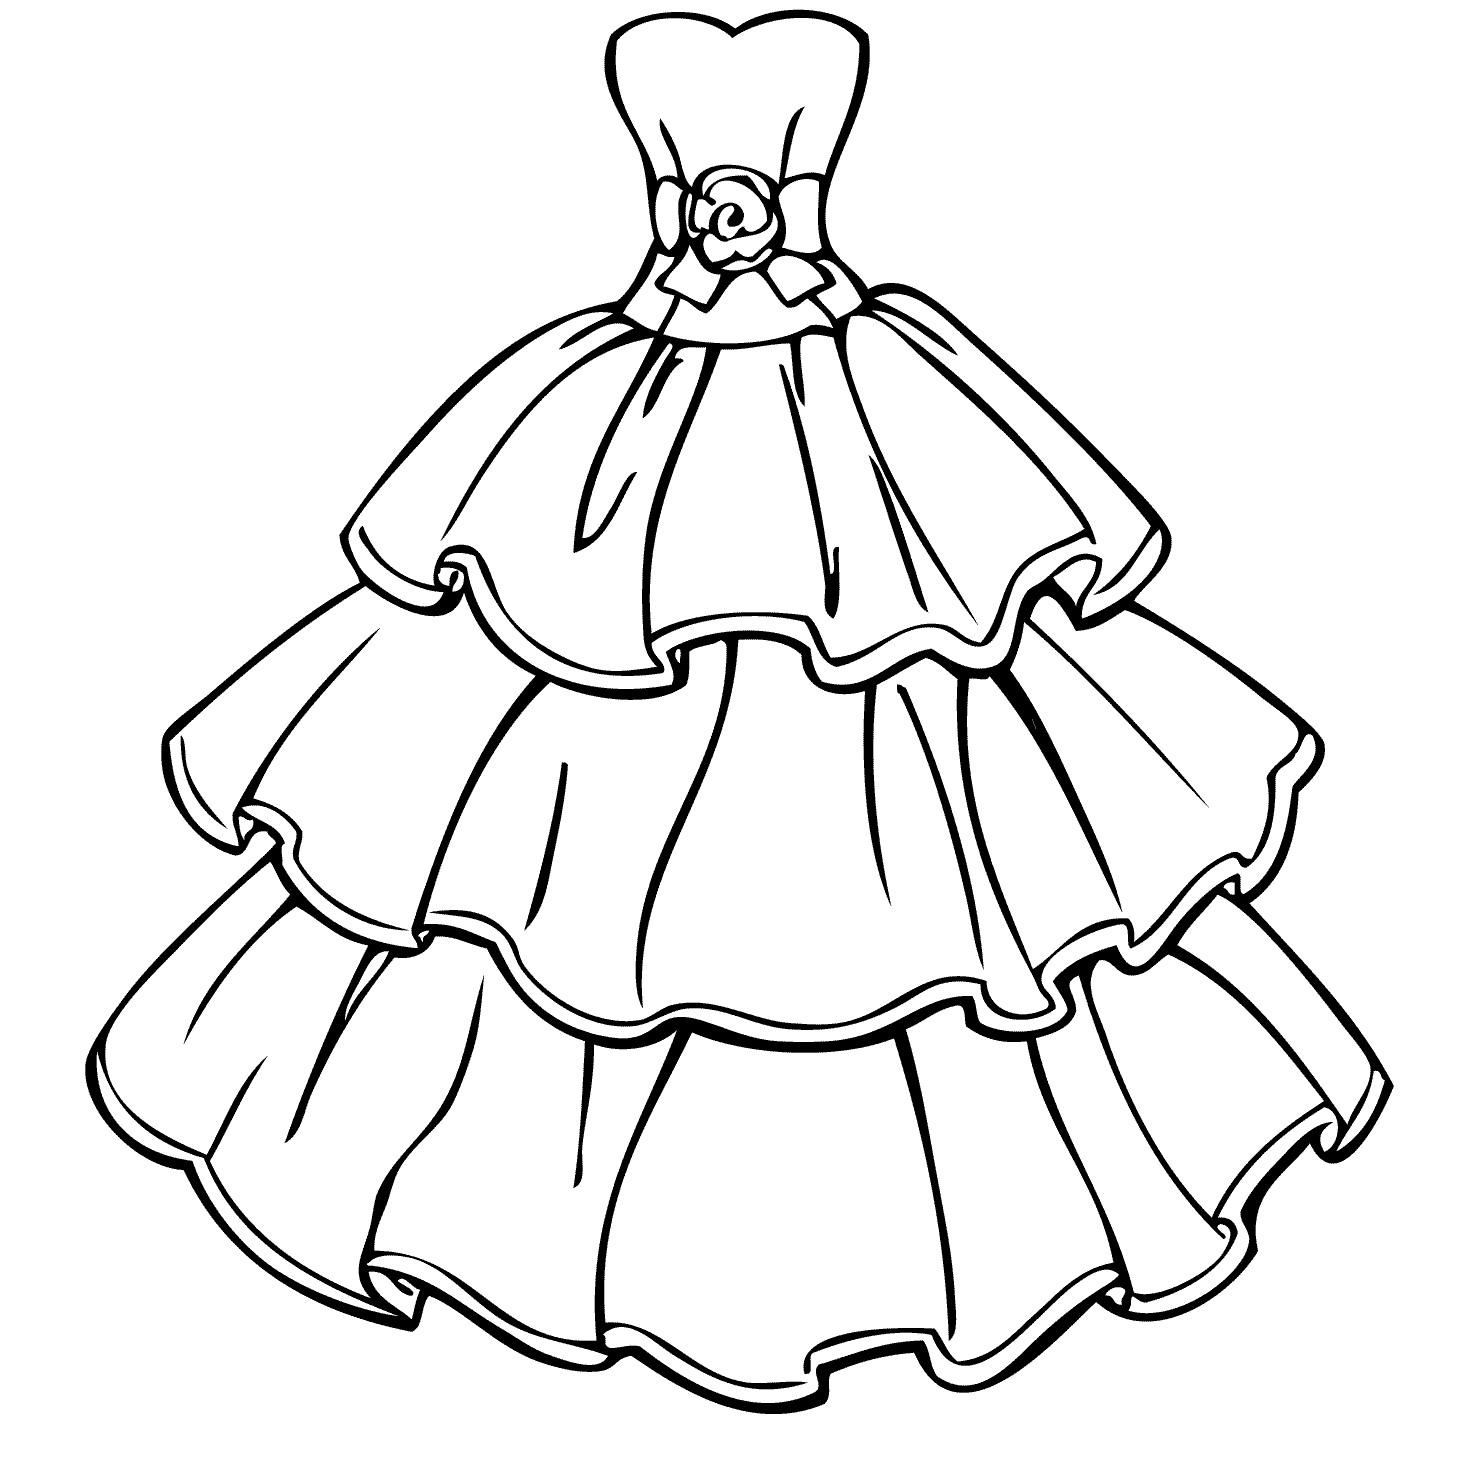 dress coloring pictures light dress coloring page for girls printable free coloring pictures dress